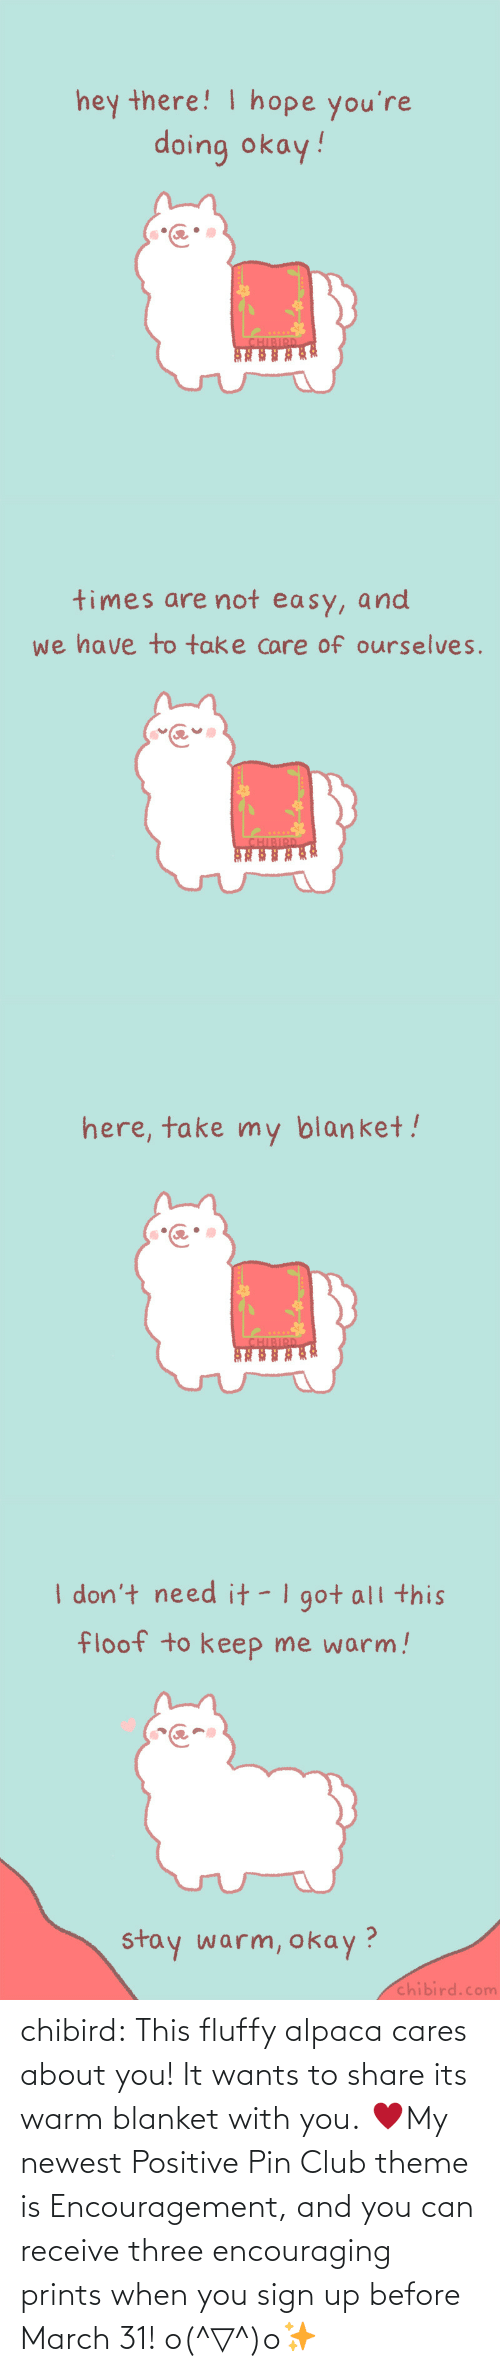 About You: chibird:  This fluffy alpaca cares about you! It wants to share its warm blanket with you. ♥My newest Positive Pin Club theme is Encouragement, and you can receive three encouraging prints when you sign up before March 31! o(^▽^)o✨